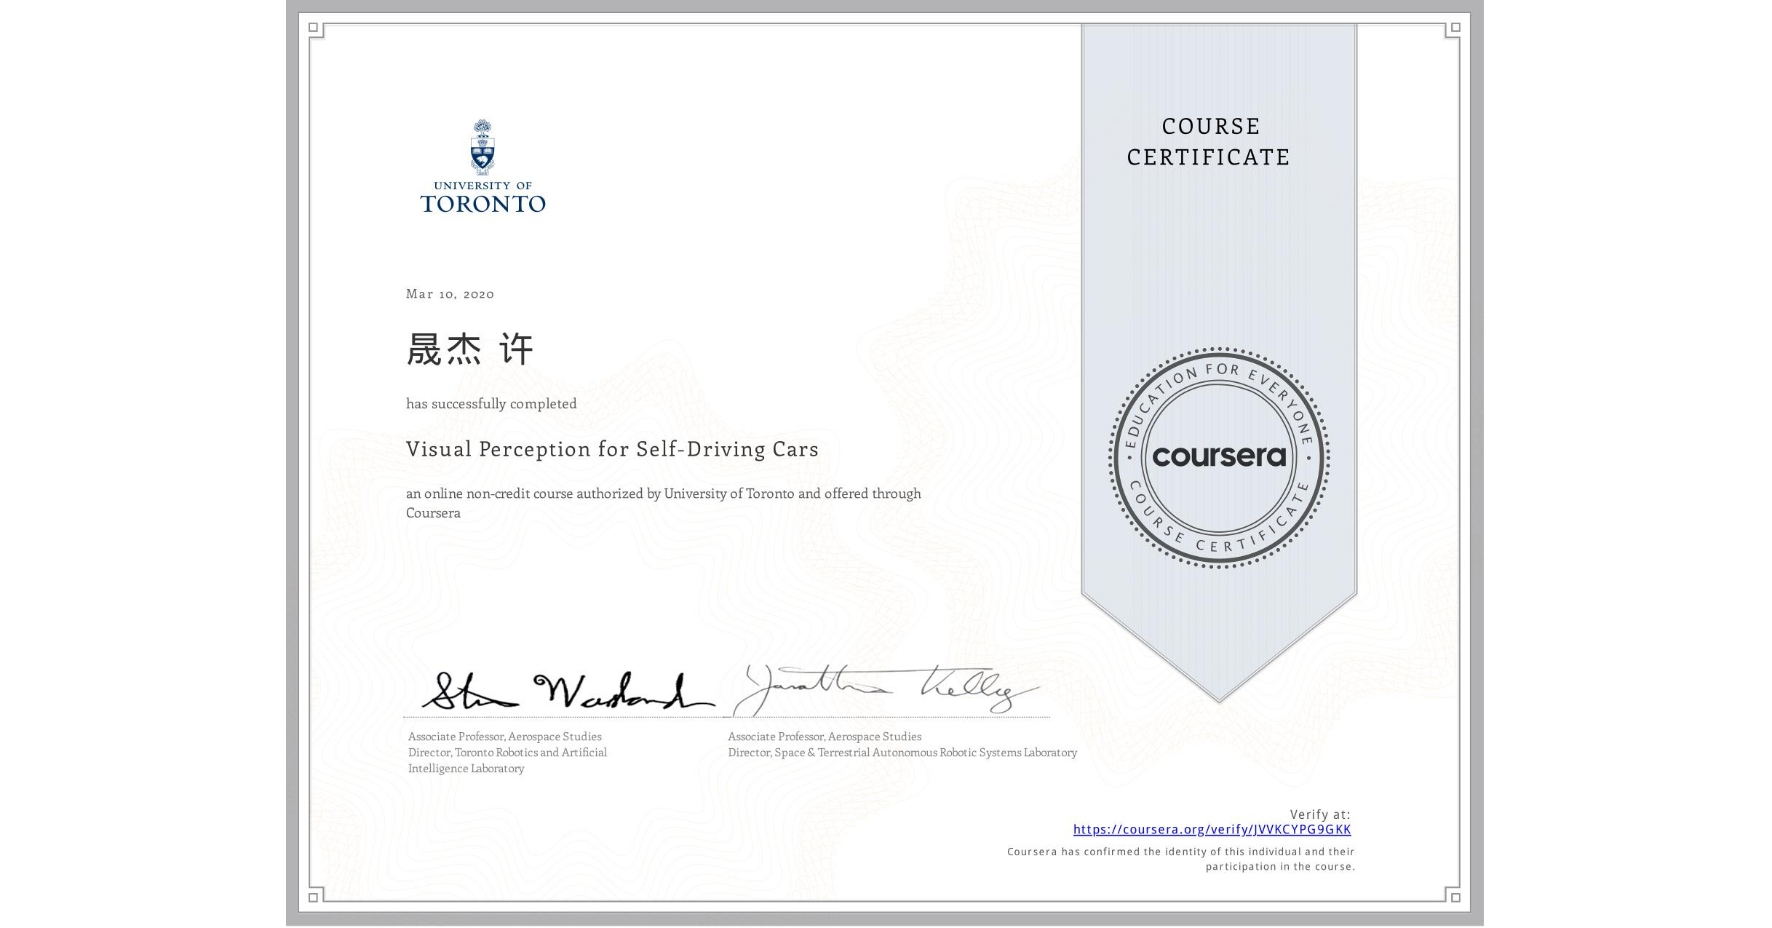 View certificate for 晟杰 许, Visual Perception for Self-Driving Cars, an online non-credit course authorized by University of Toronto and offered through Coursera